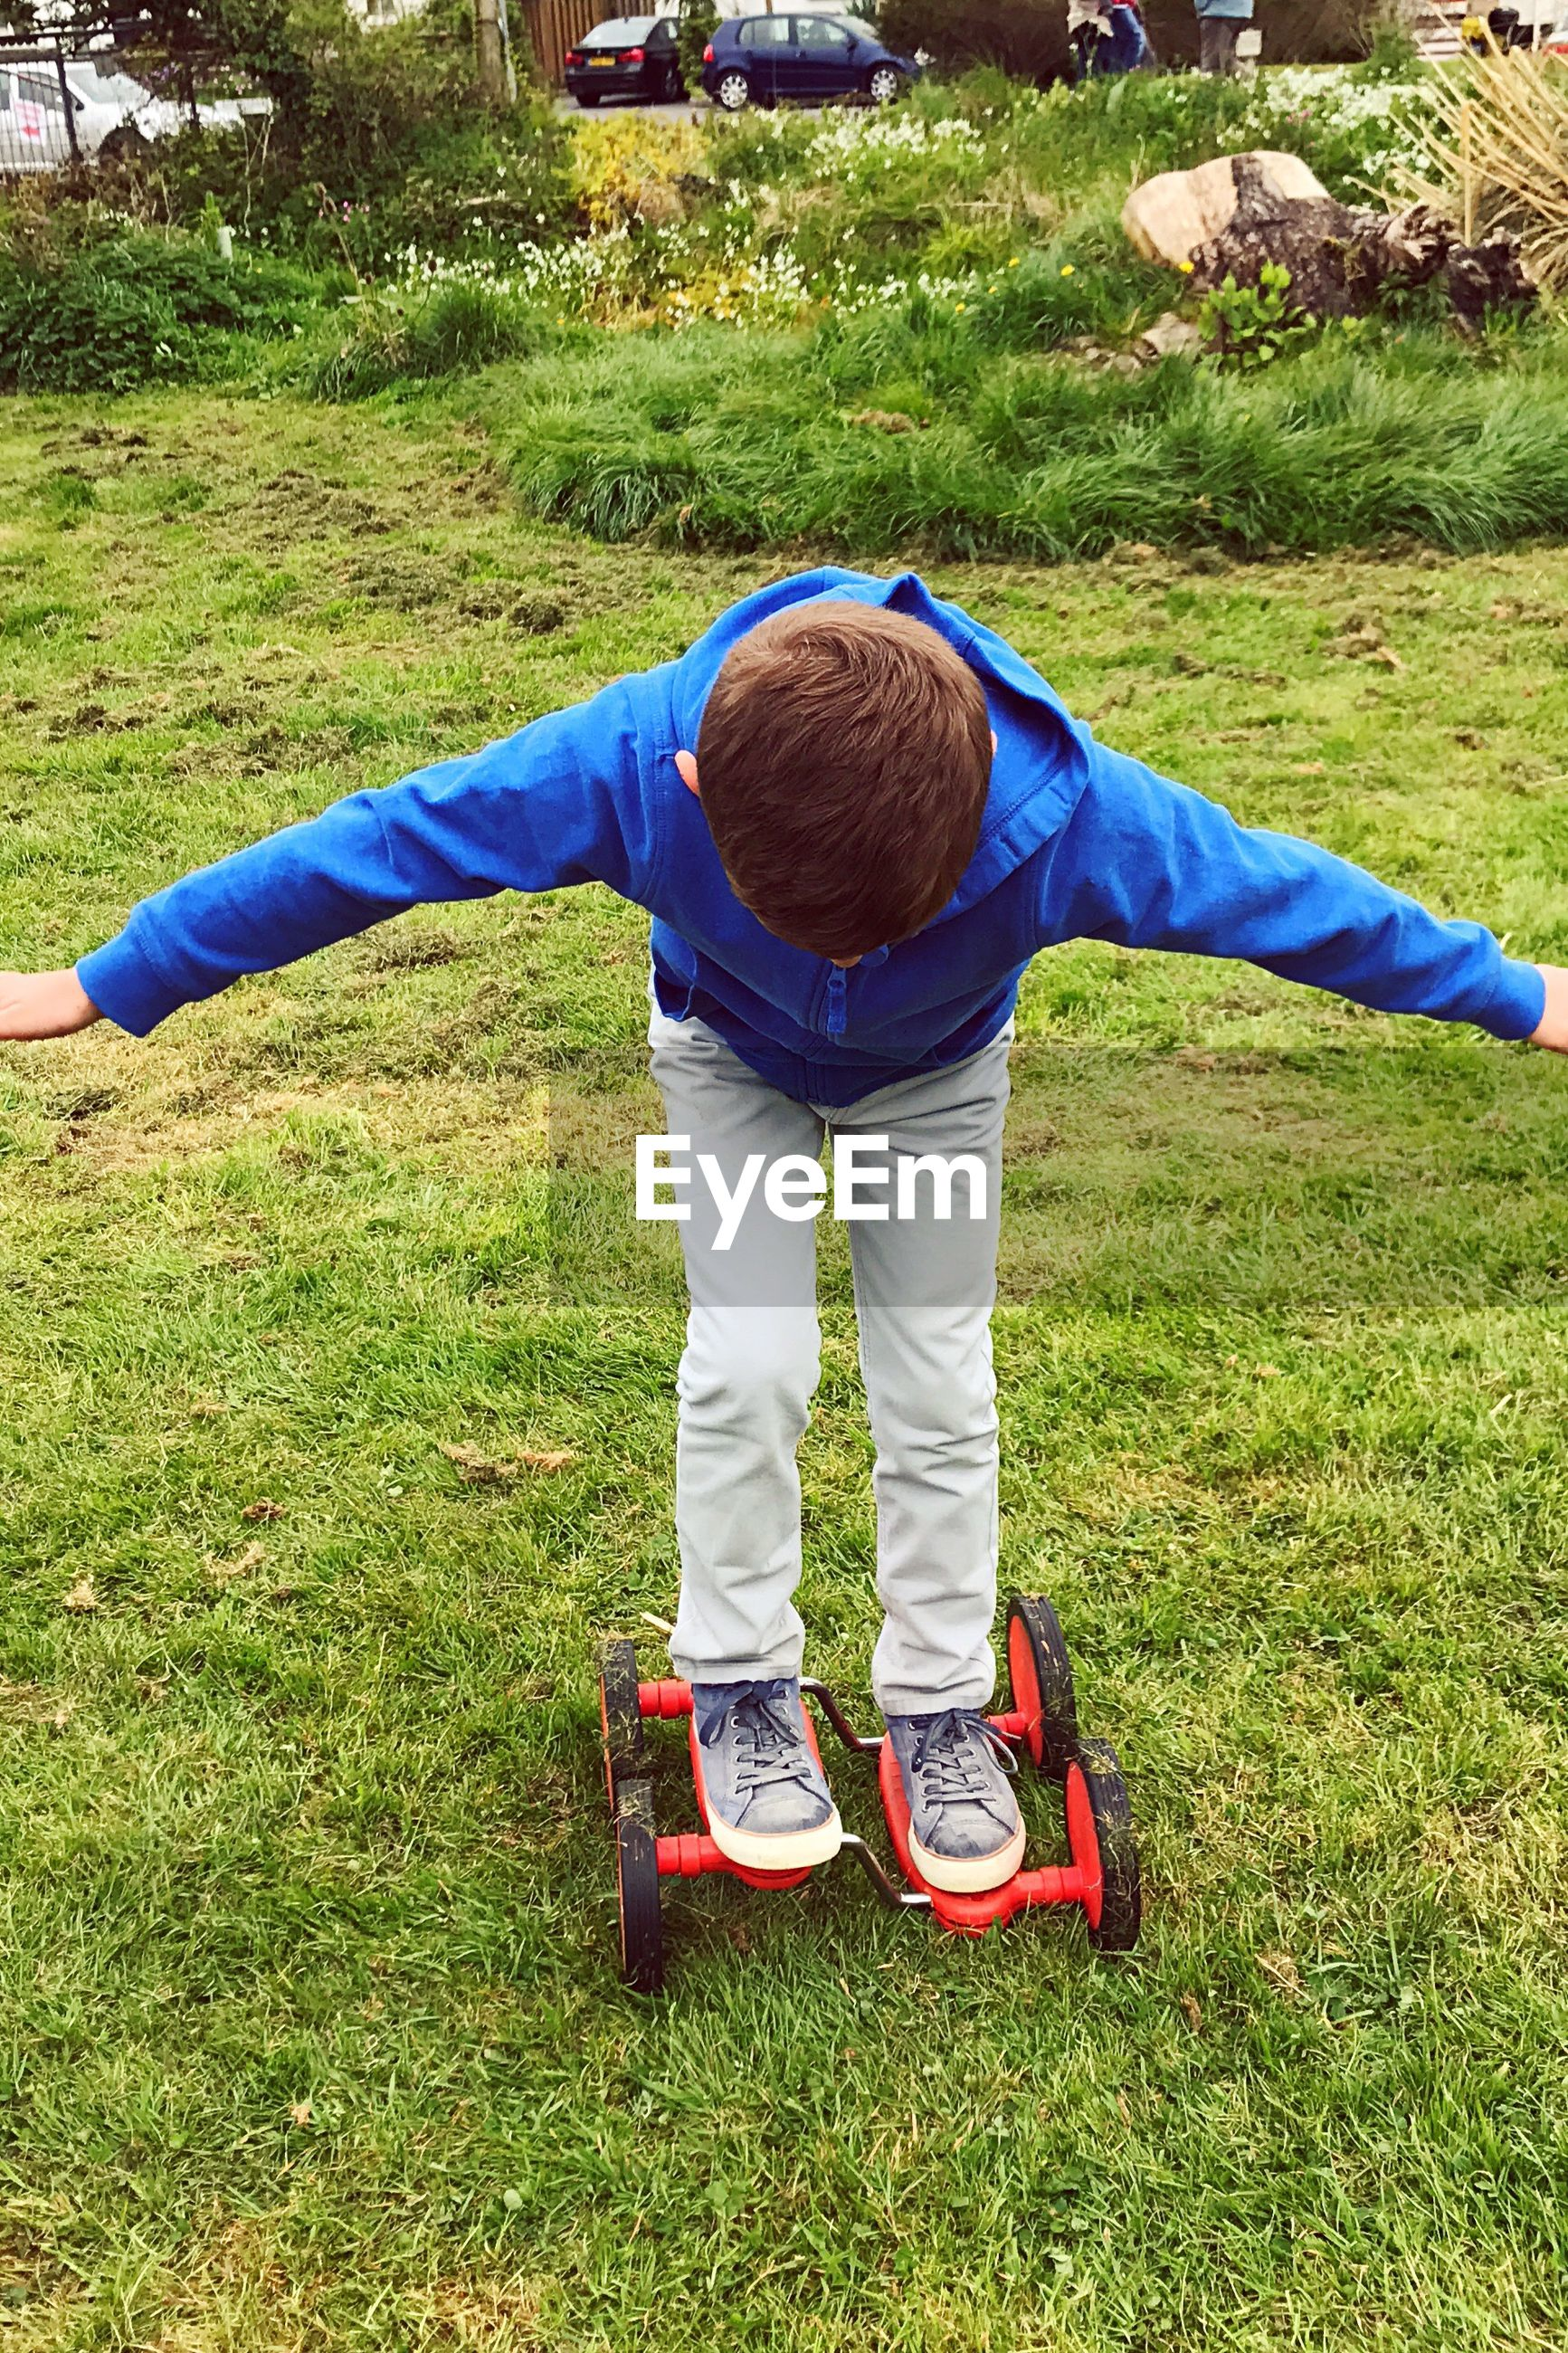 High angle view of boy roller skating on grassy field